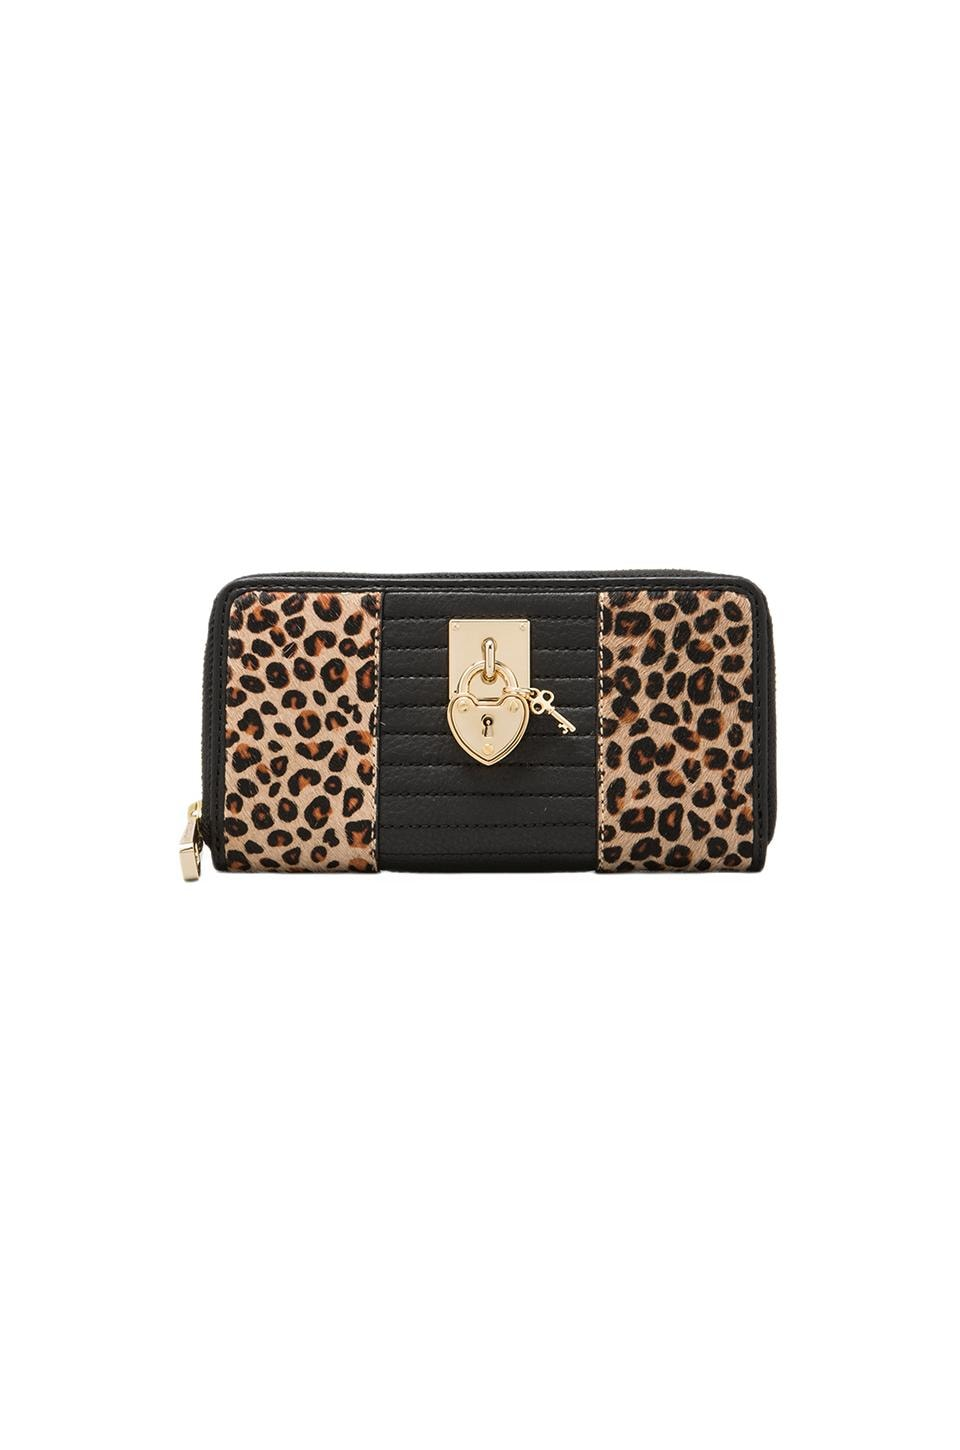 Juicy Couture Continental Zip Wallet in Natural Leopard